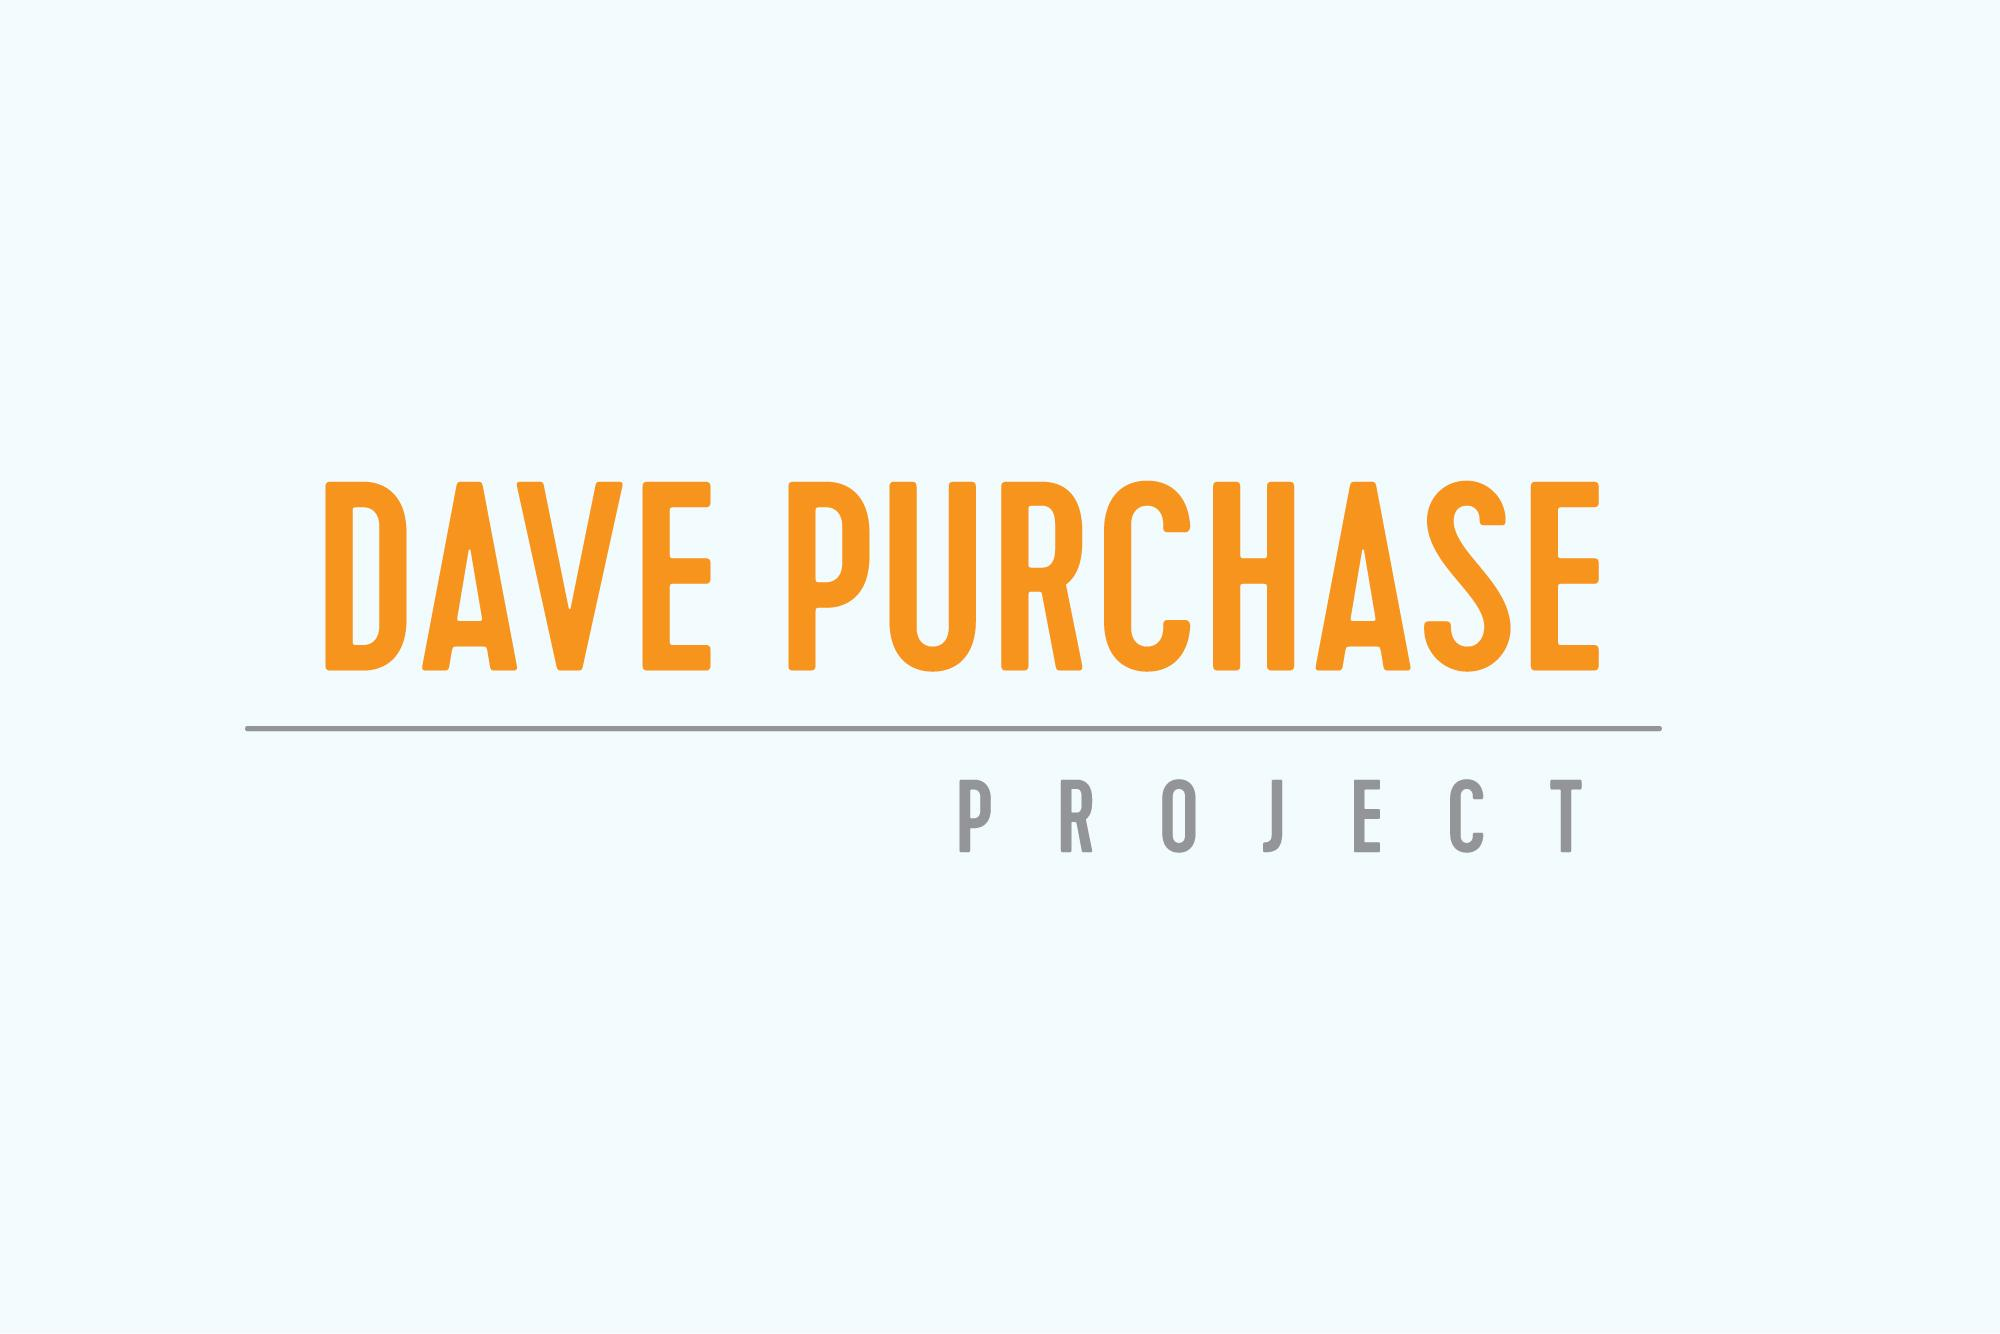 Dave Purchase Project logo